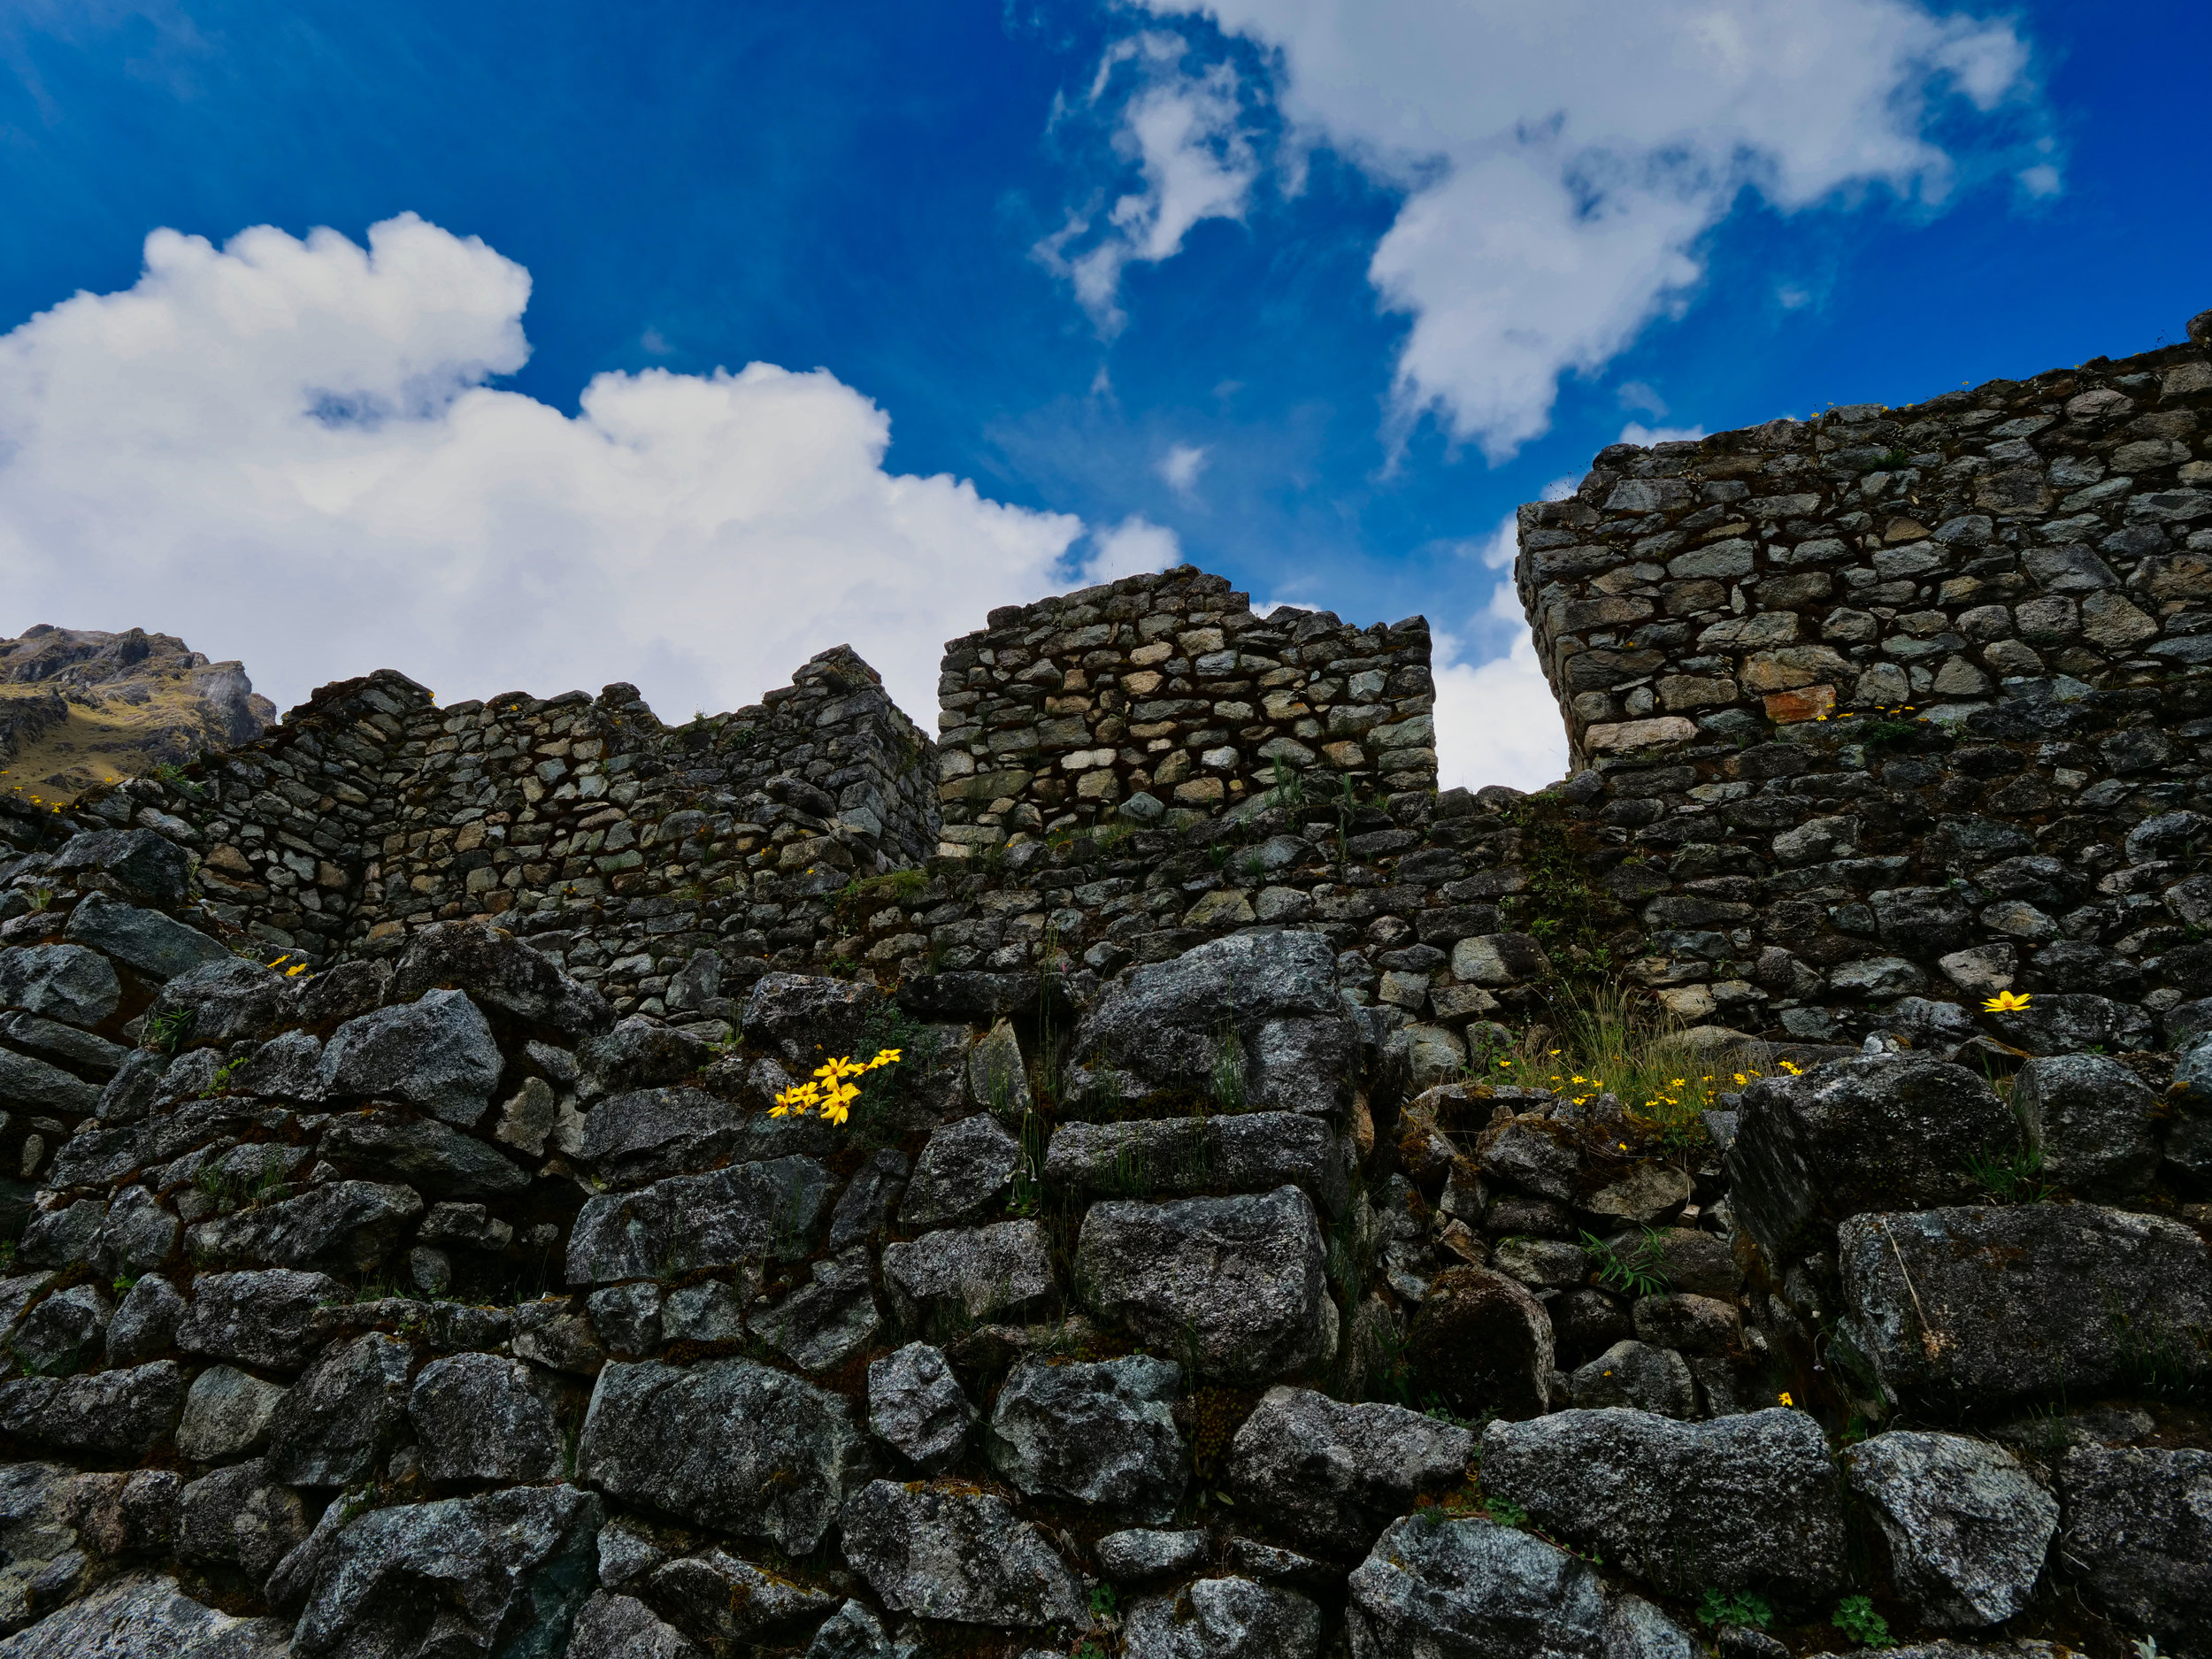 Sayaqmarka, just one of the incredible sites to explore on the Inca Trail